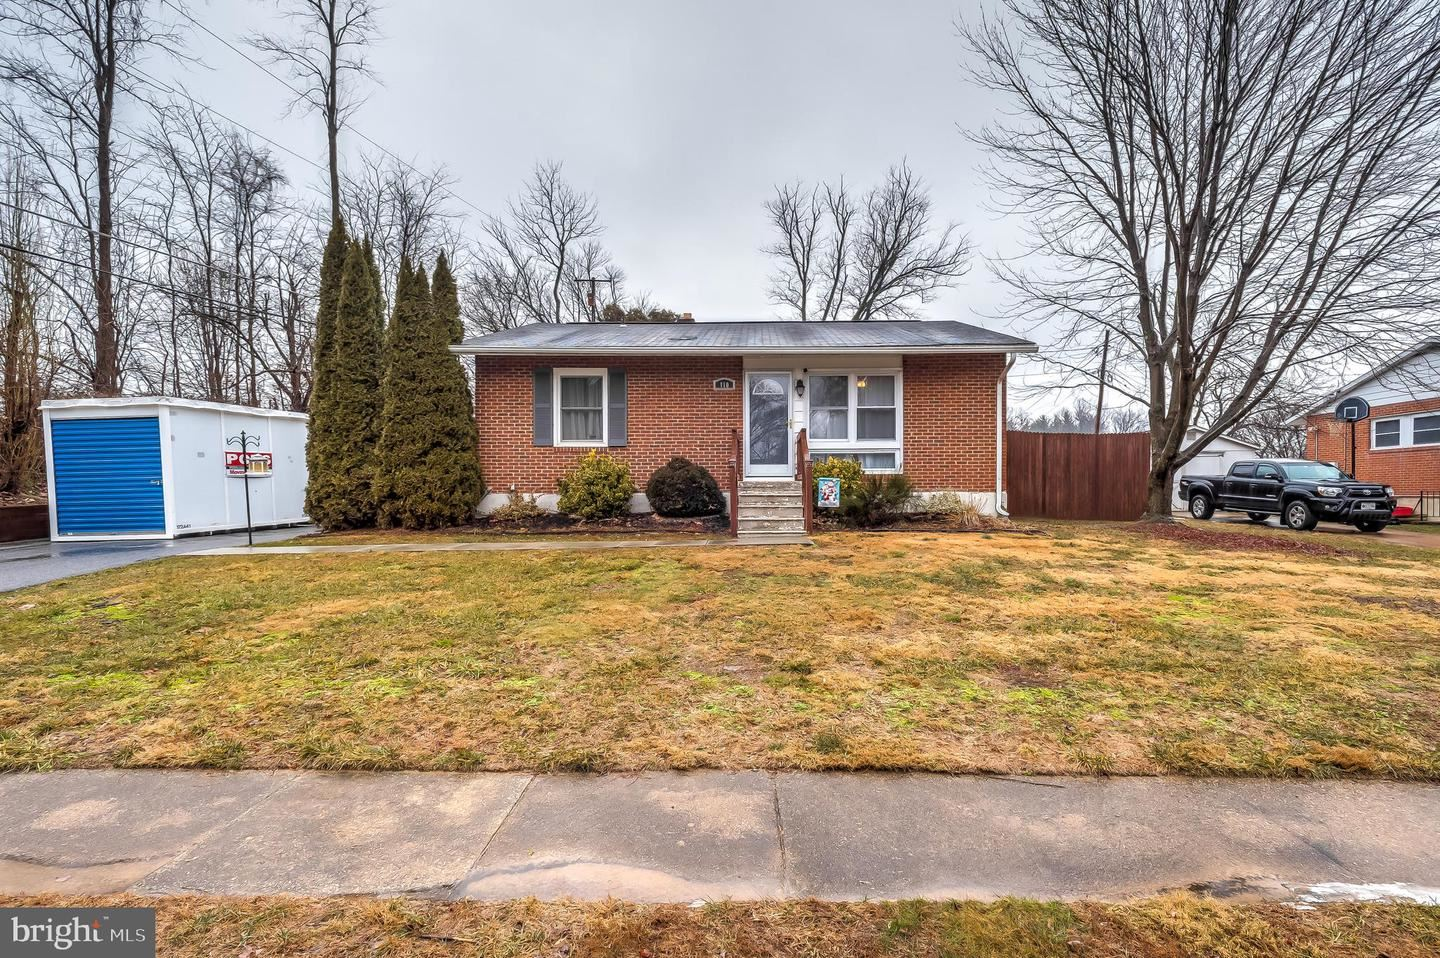 110 CONEWOOD AVE, Reisterstown, MD 21136 - MLS#: MDBC521790